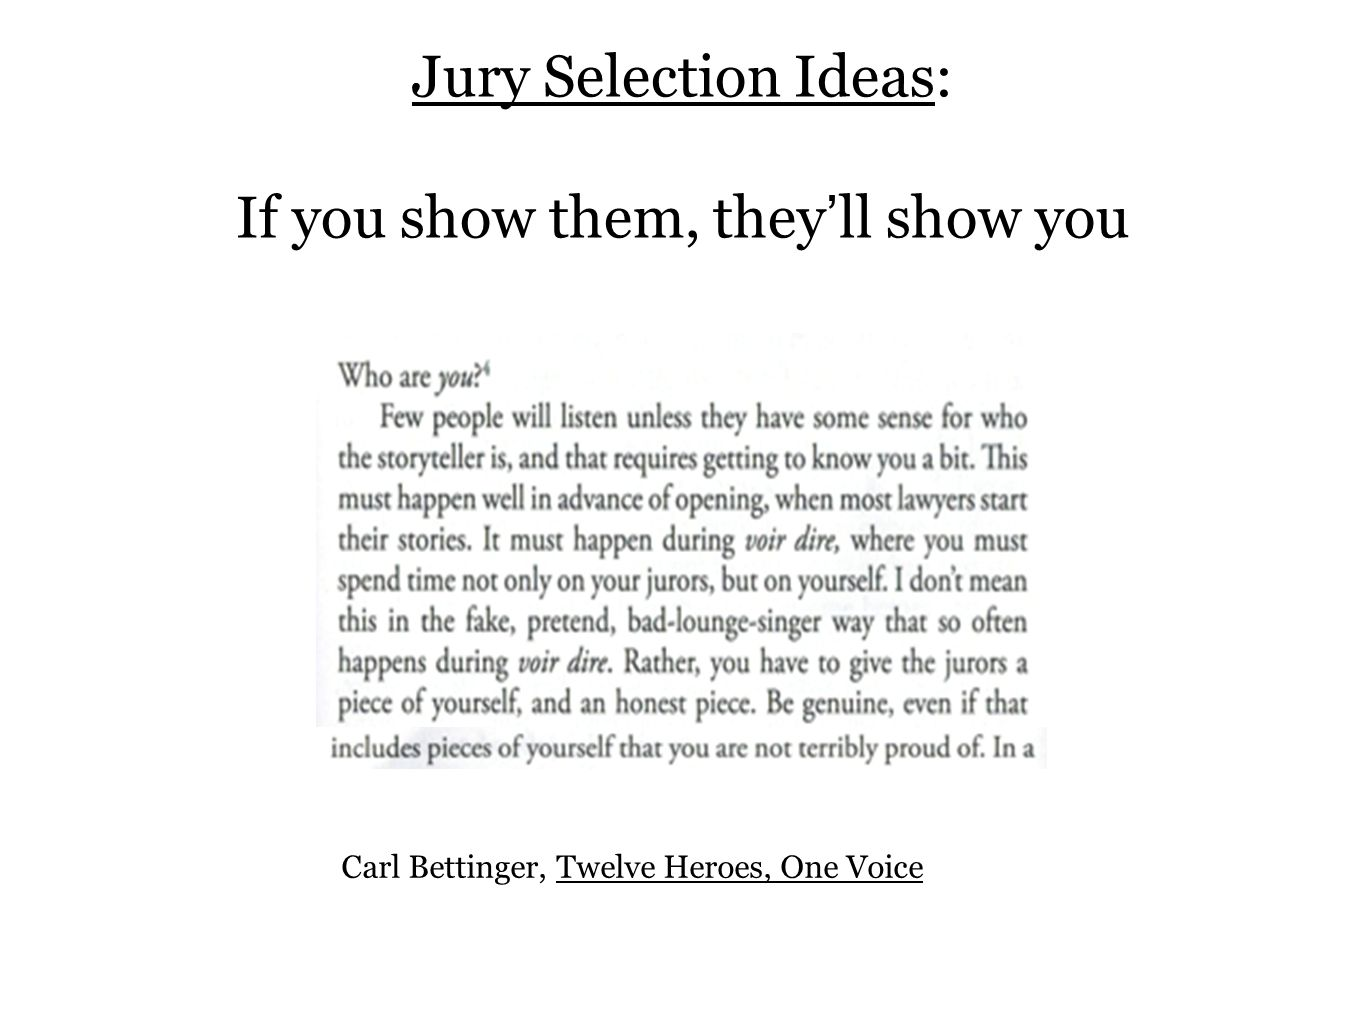 Jury Selection Ideas: If you show them, they'll show you